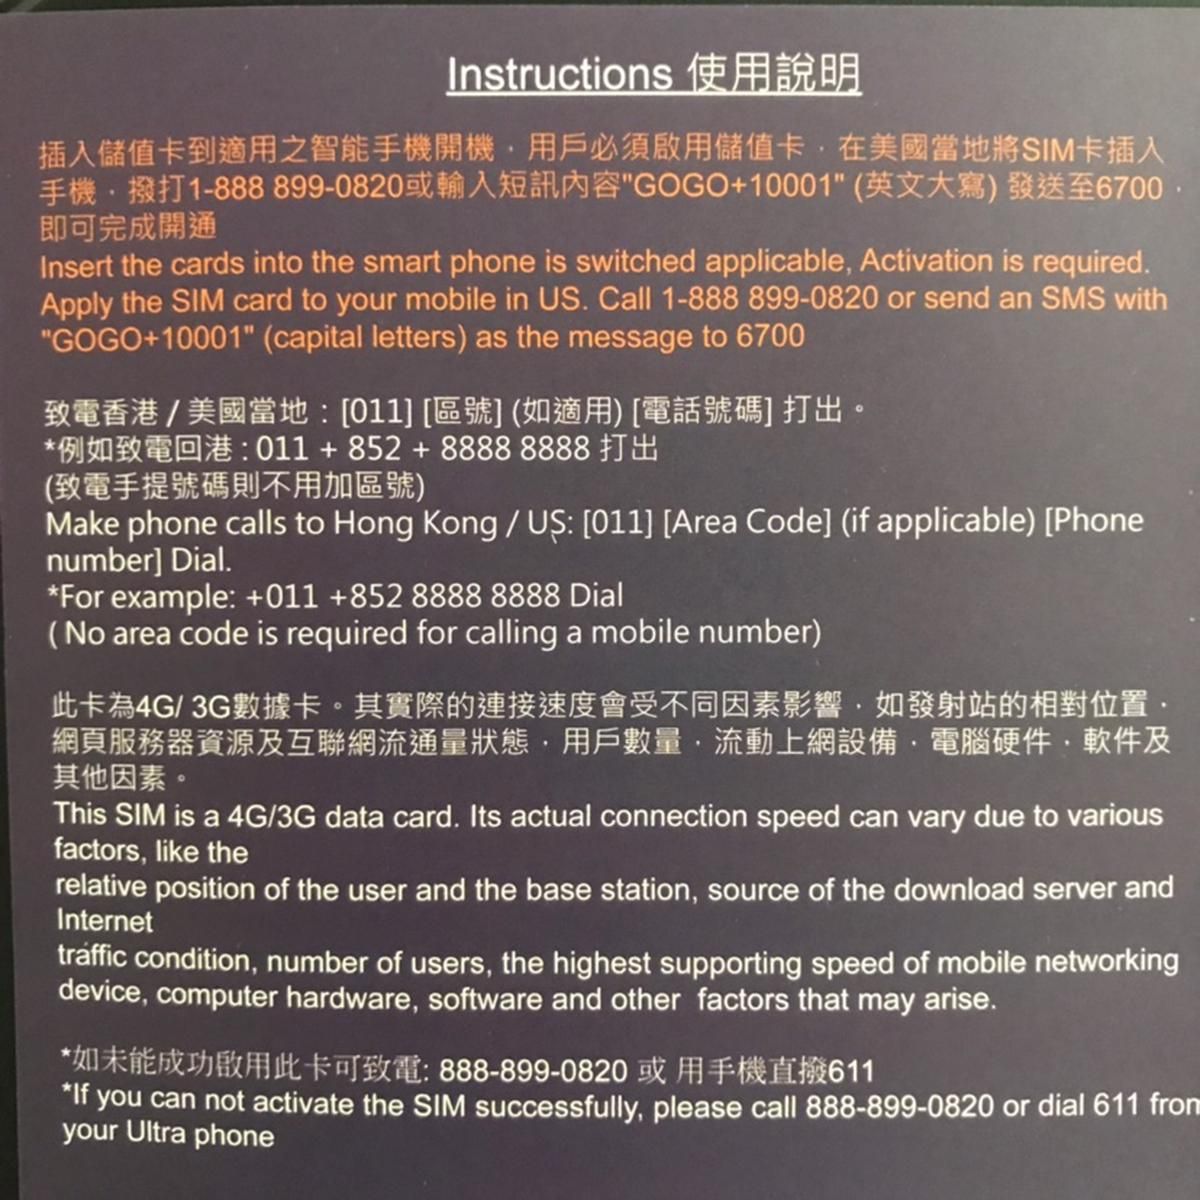 3G/4G SIM Card for USA (HK Airport Pick Up)